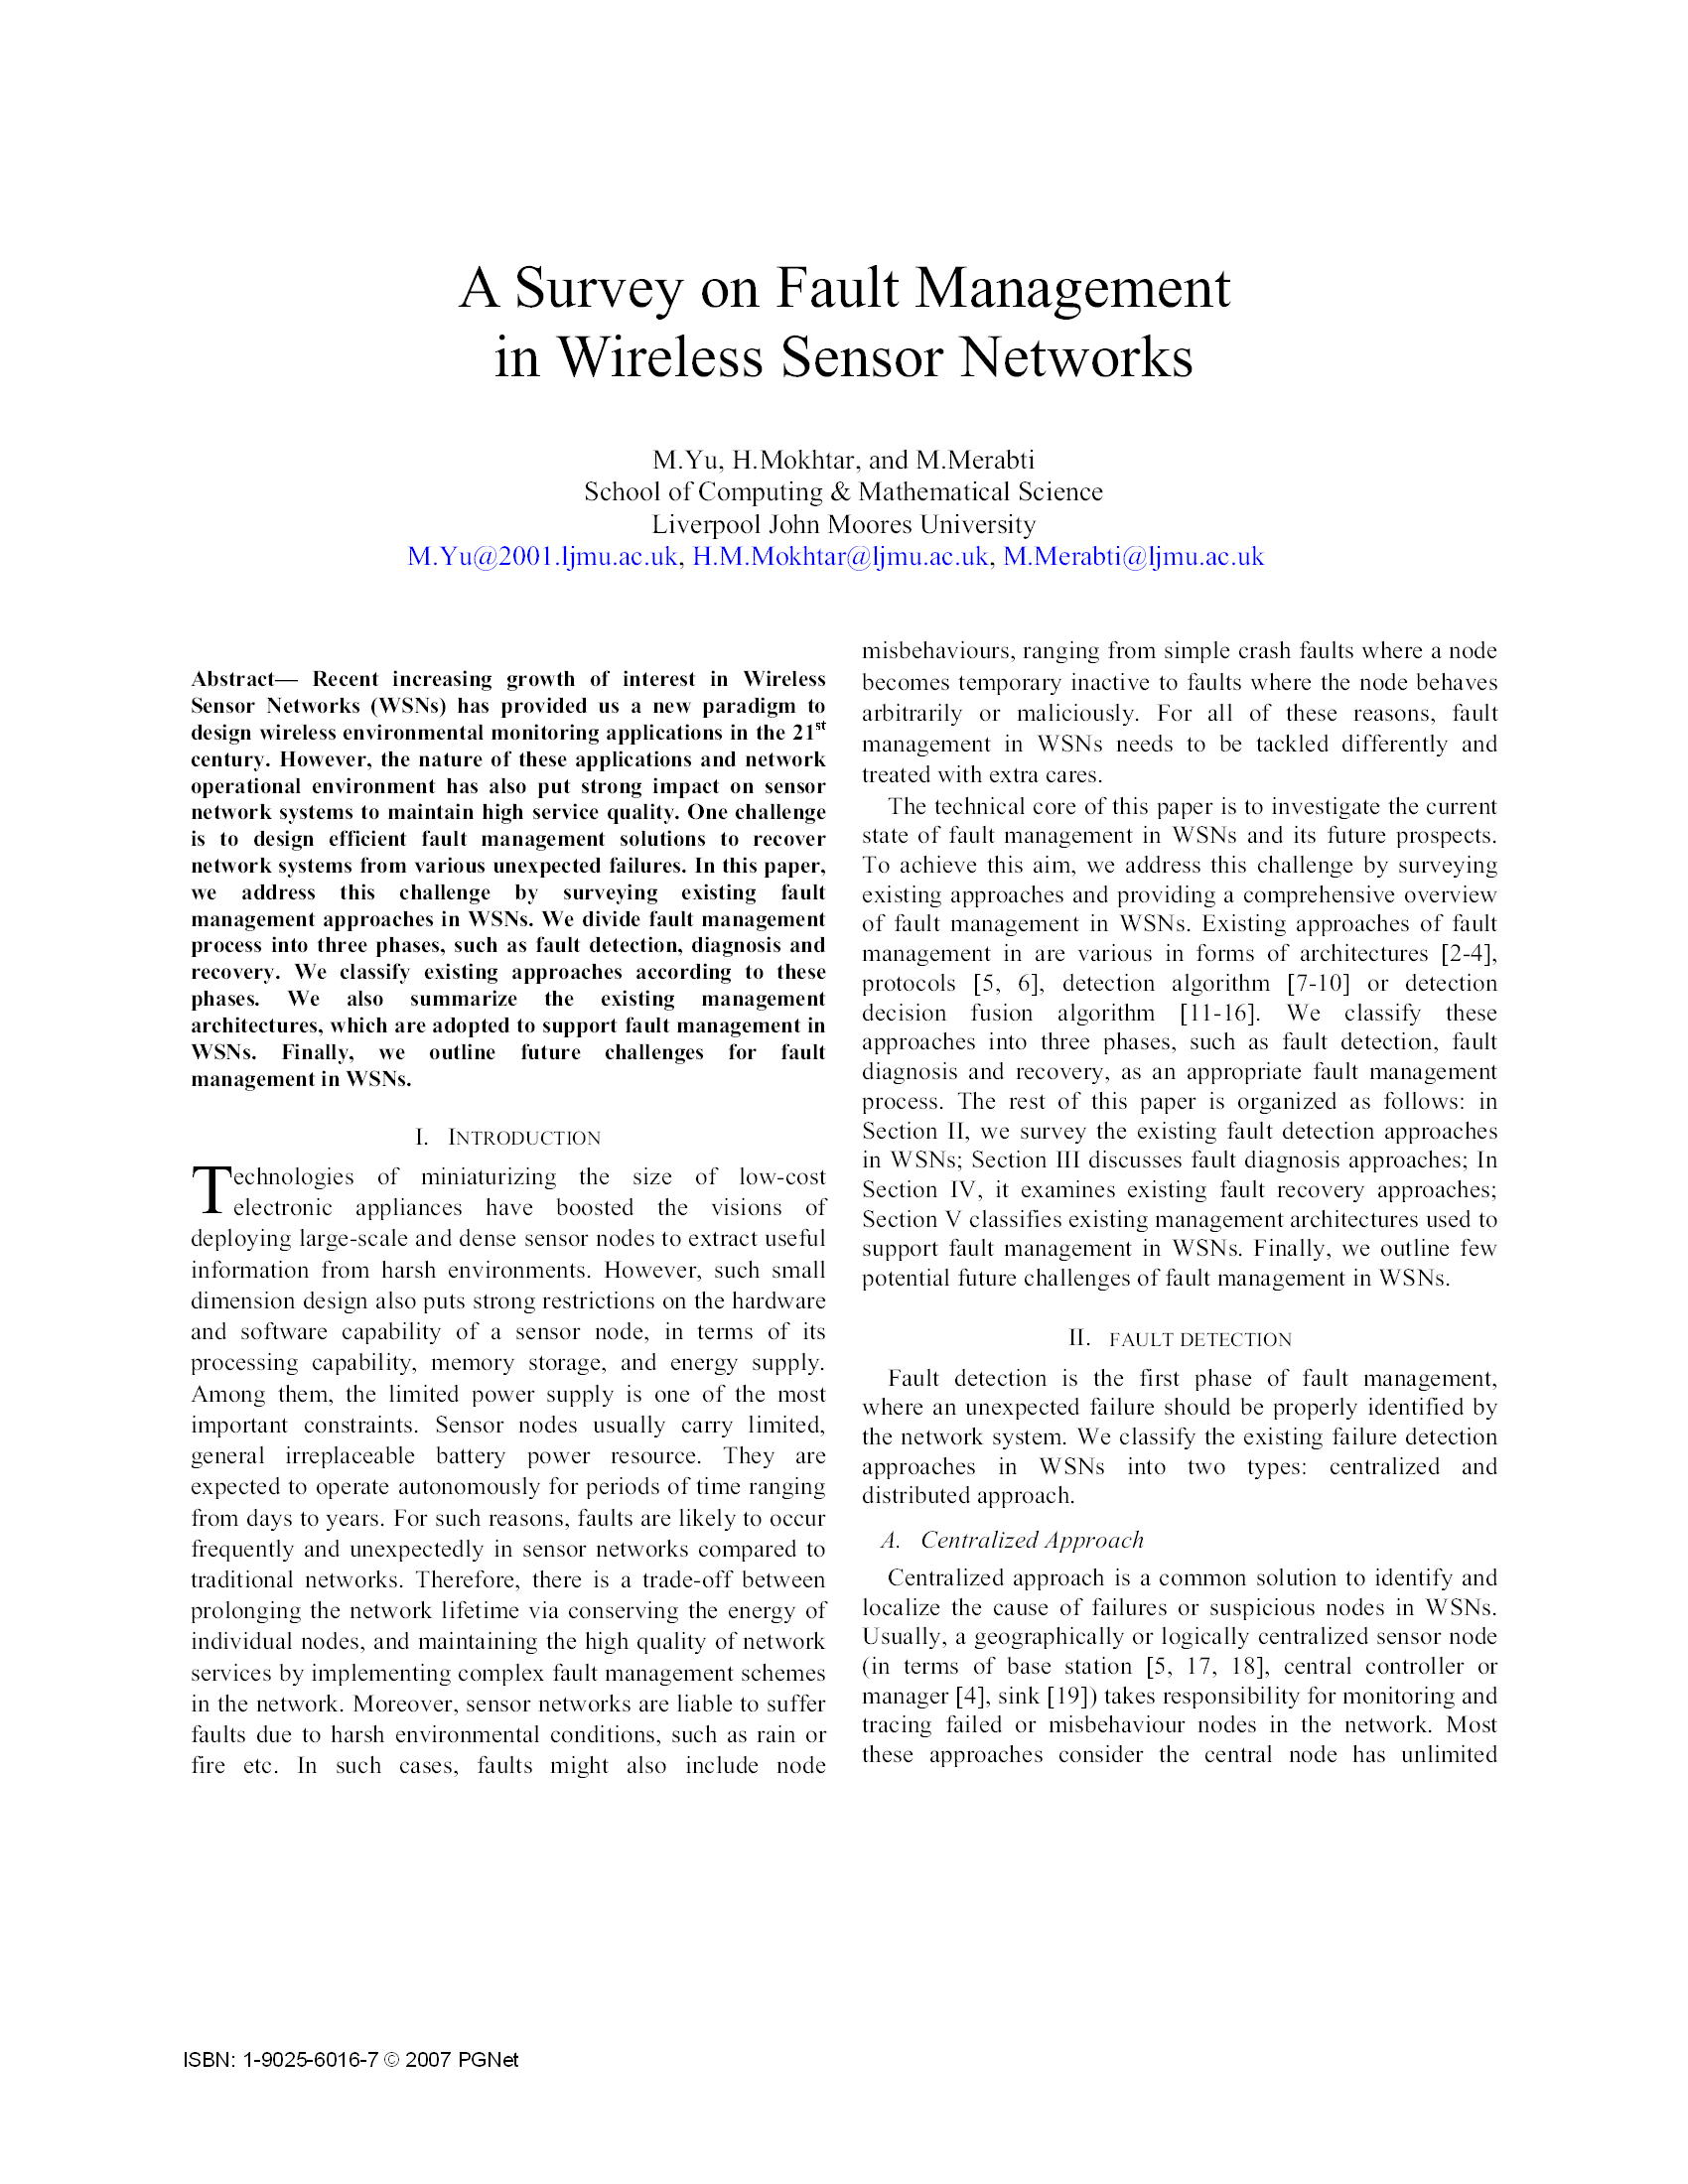 A Survey on Fault Management in Wireless Sensor Networks6